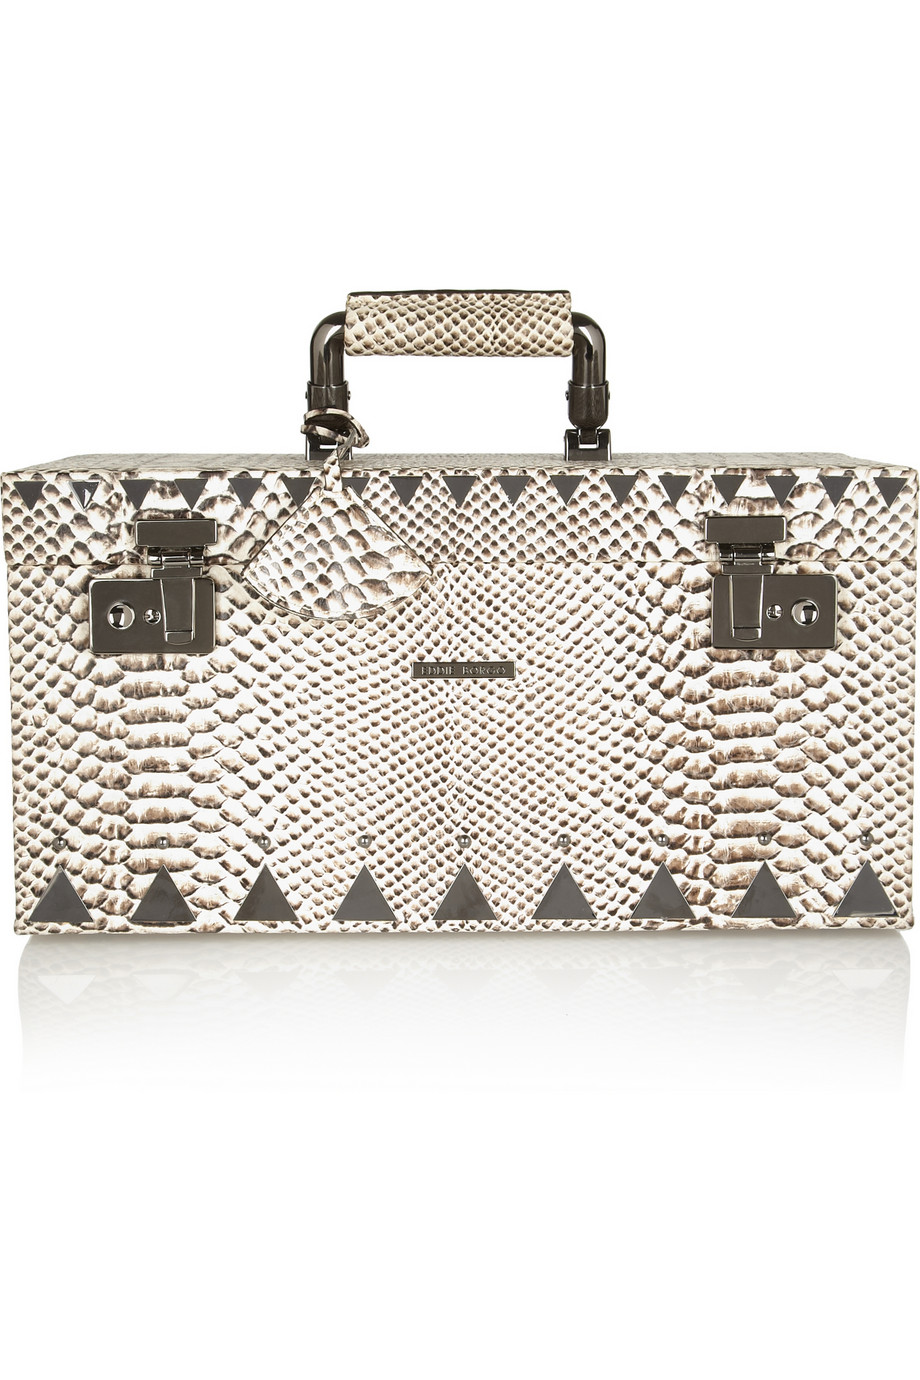 Lyst Eddie Borgo Snake effect Leather and Gunmetal Jewelry Box in